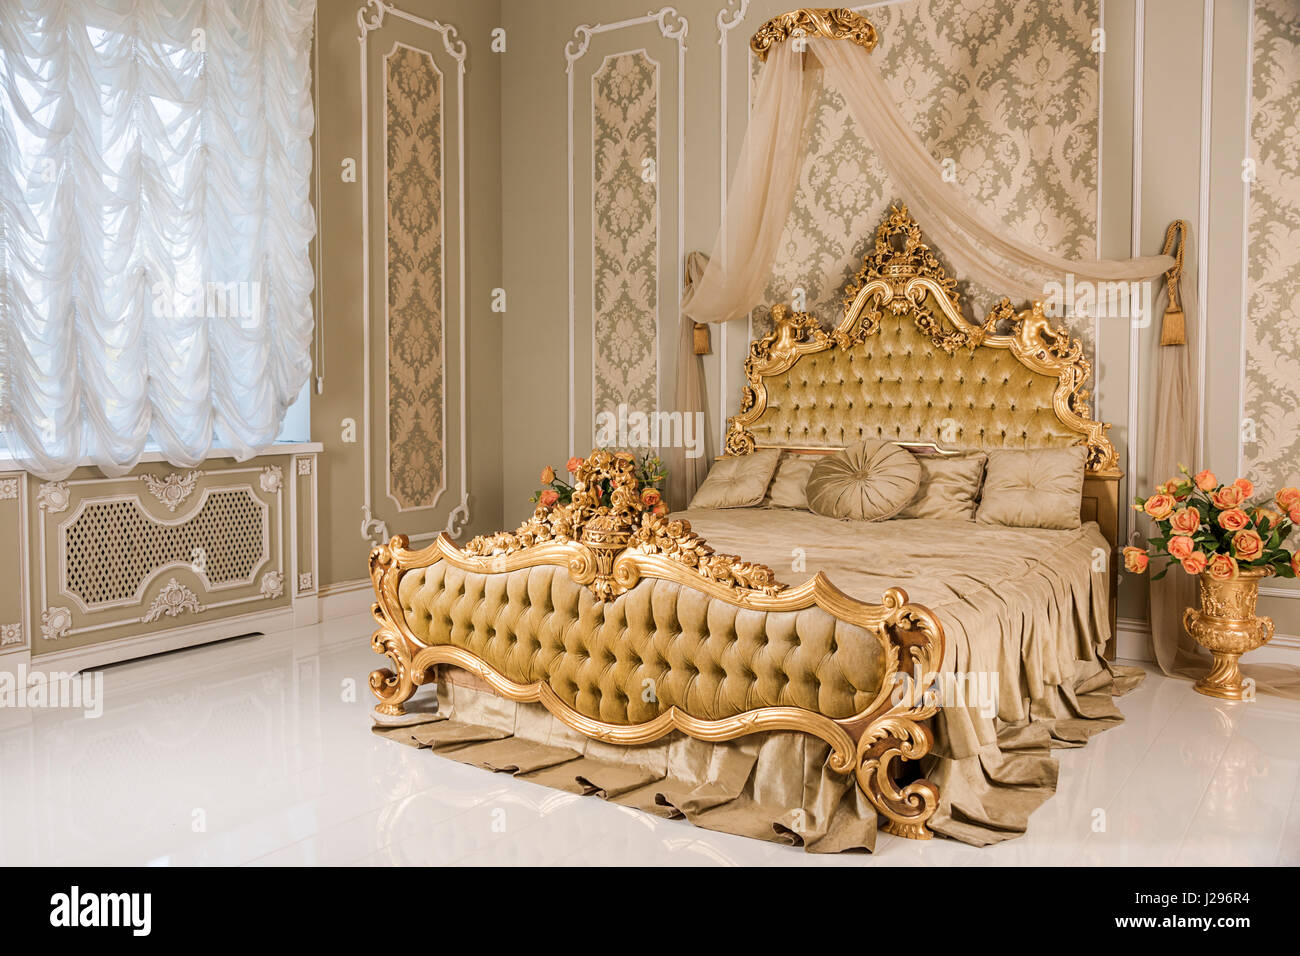 Luxury bedroom in light colors with golden furniture details big stock photo 139115176 alamy Home design golden city furniture